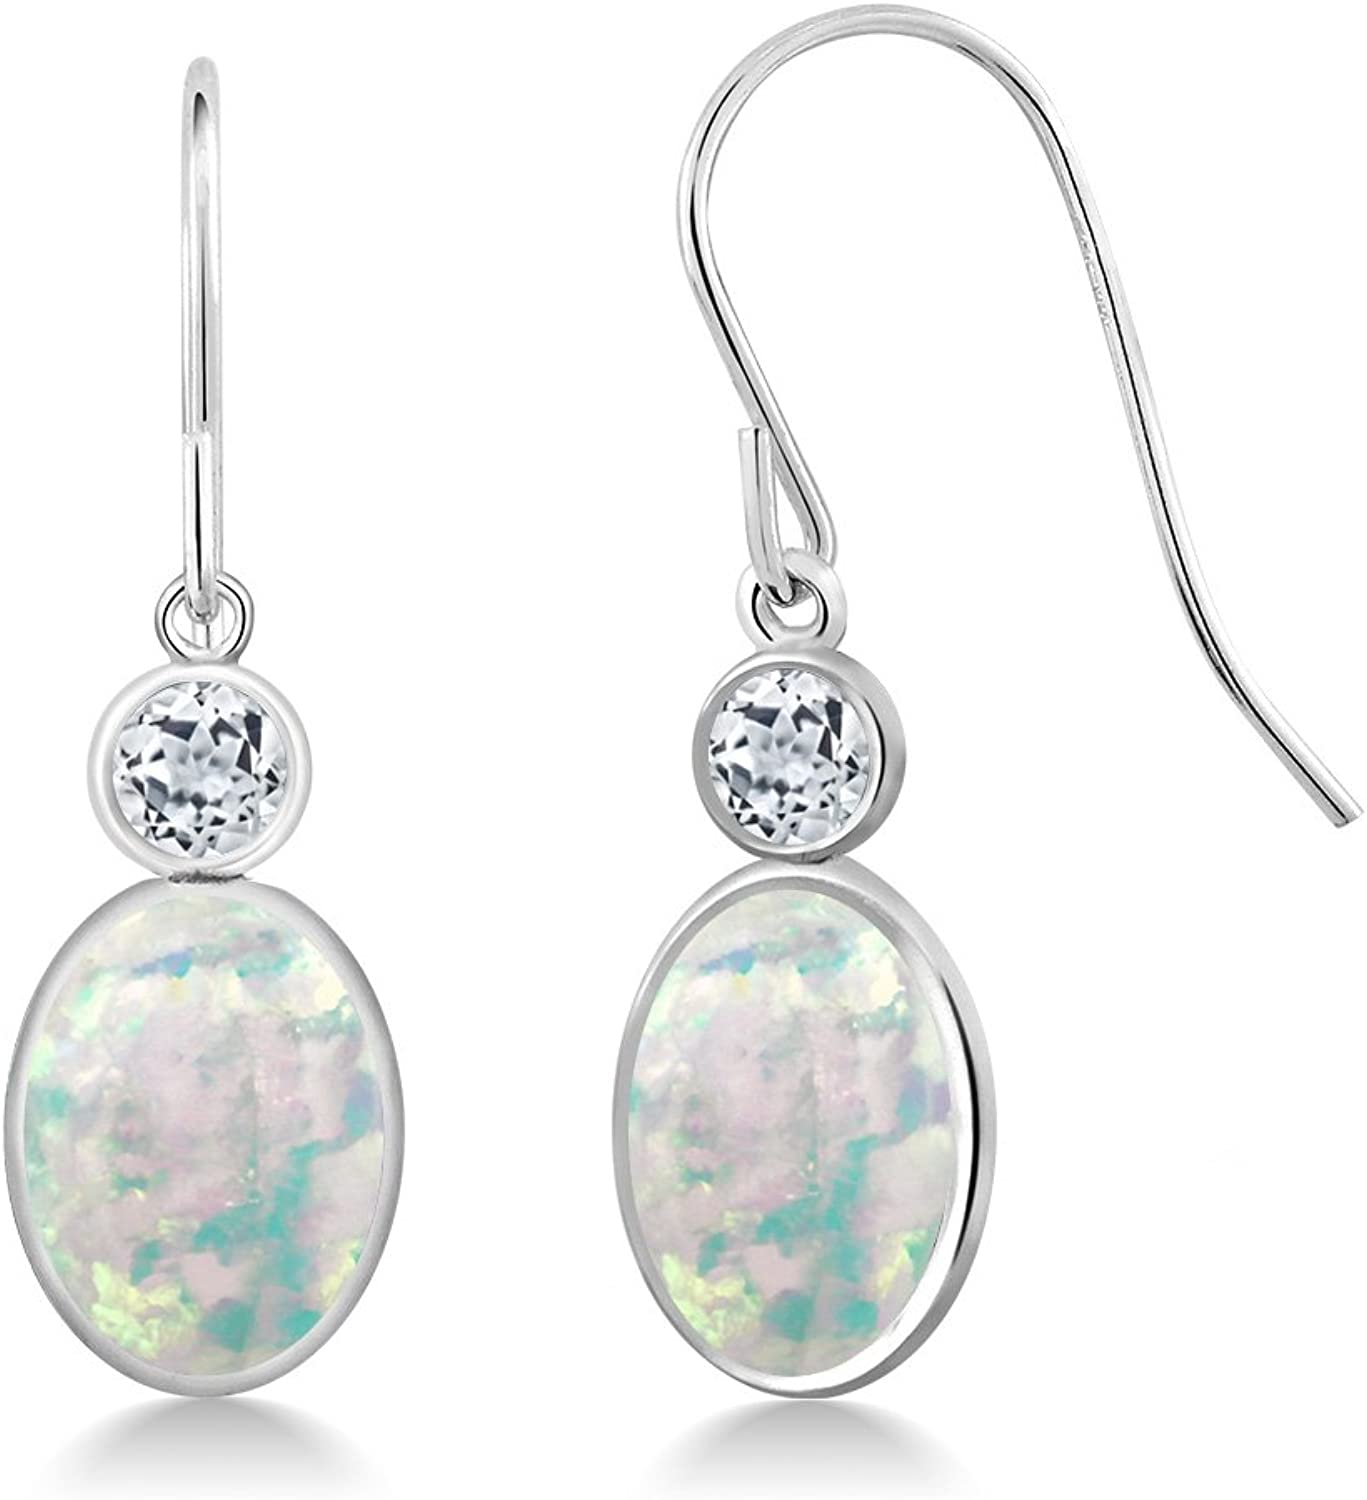 2.38 Ct Oval Cabochon White Simulated Opal White Topaz 14K White gold Earrings